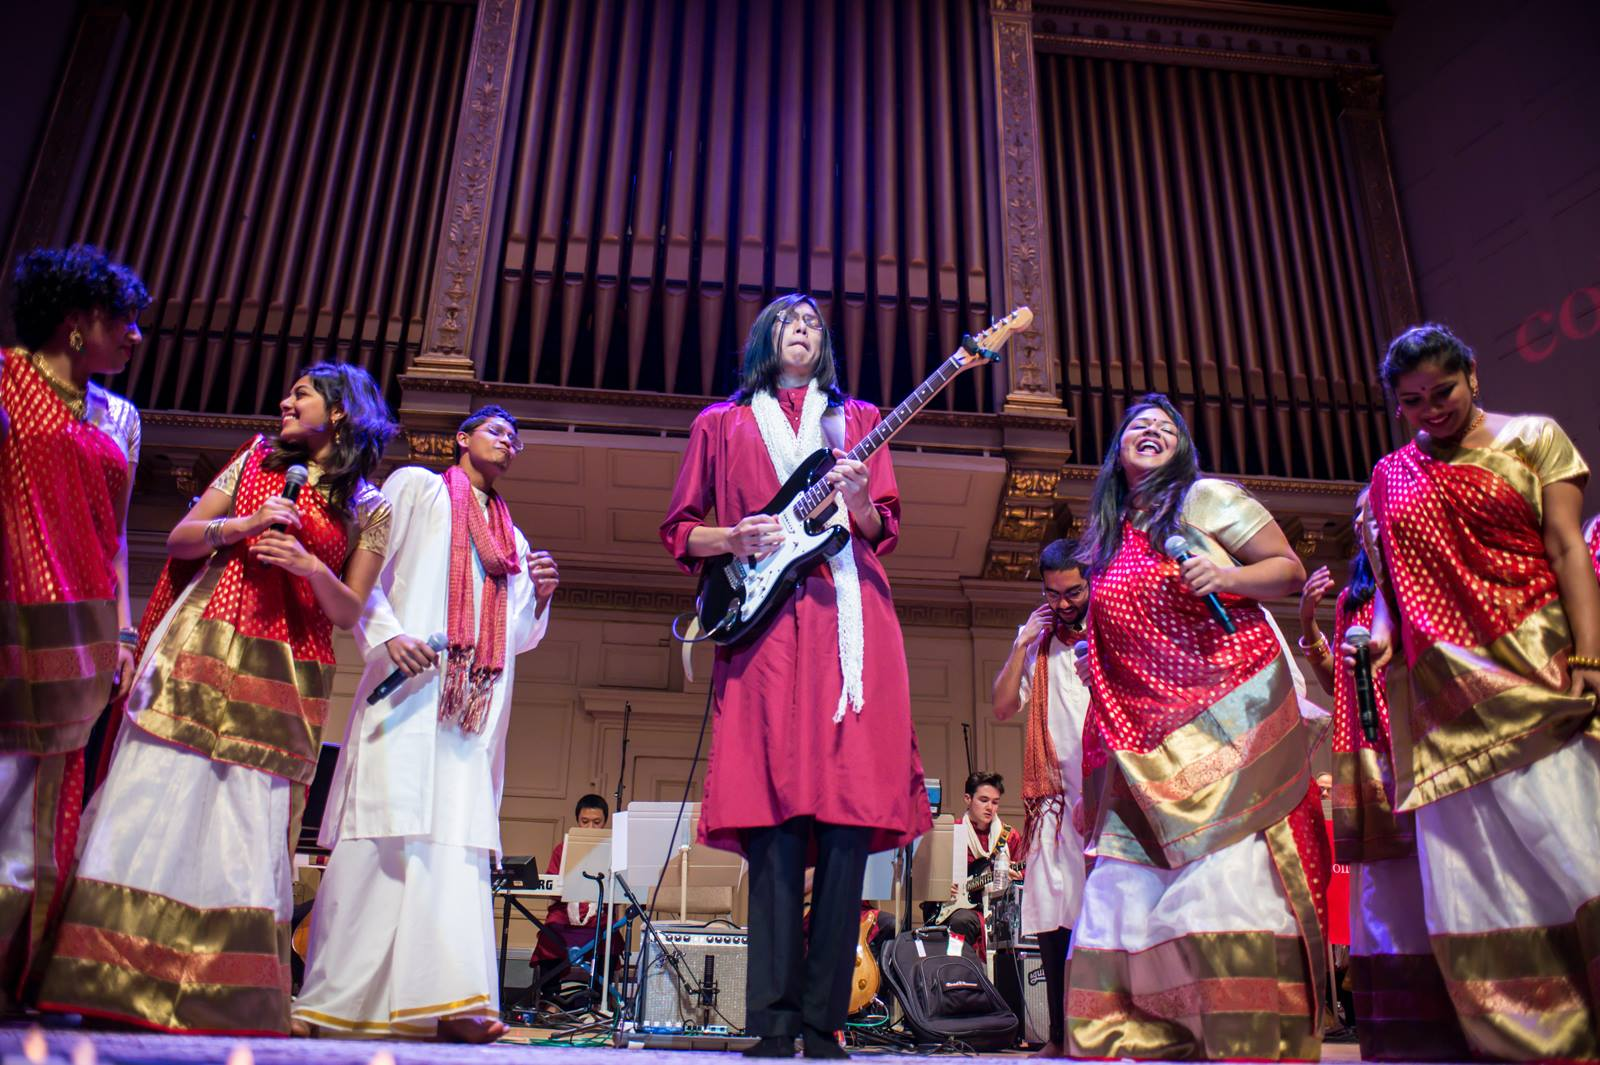 Tribute to A.R. Rahman at Symphony Hall - Boston, MA - Nov '14